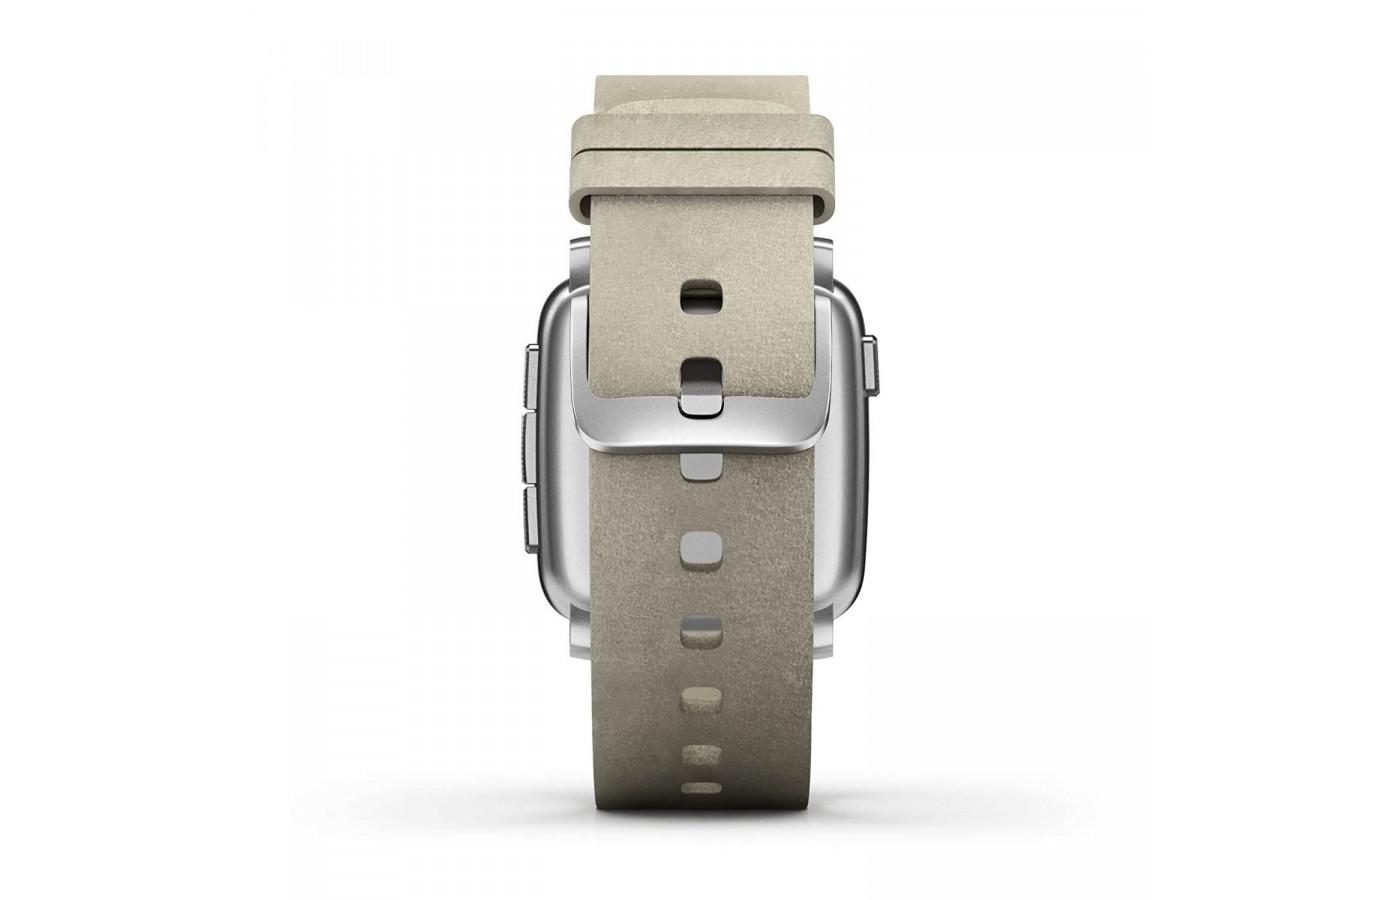 The Pebble Time Steel's included leather band